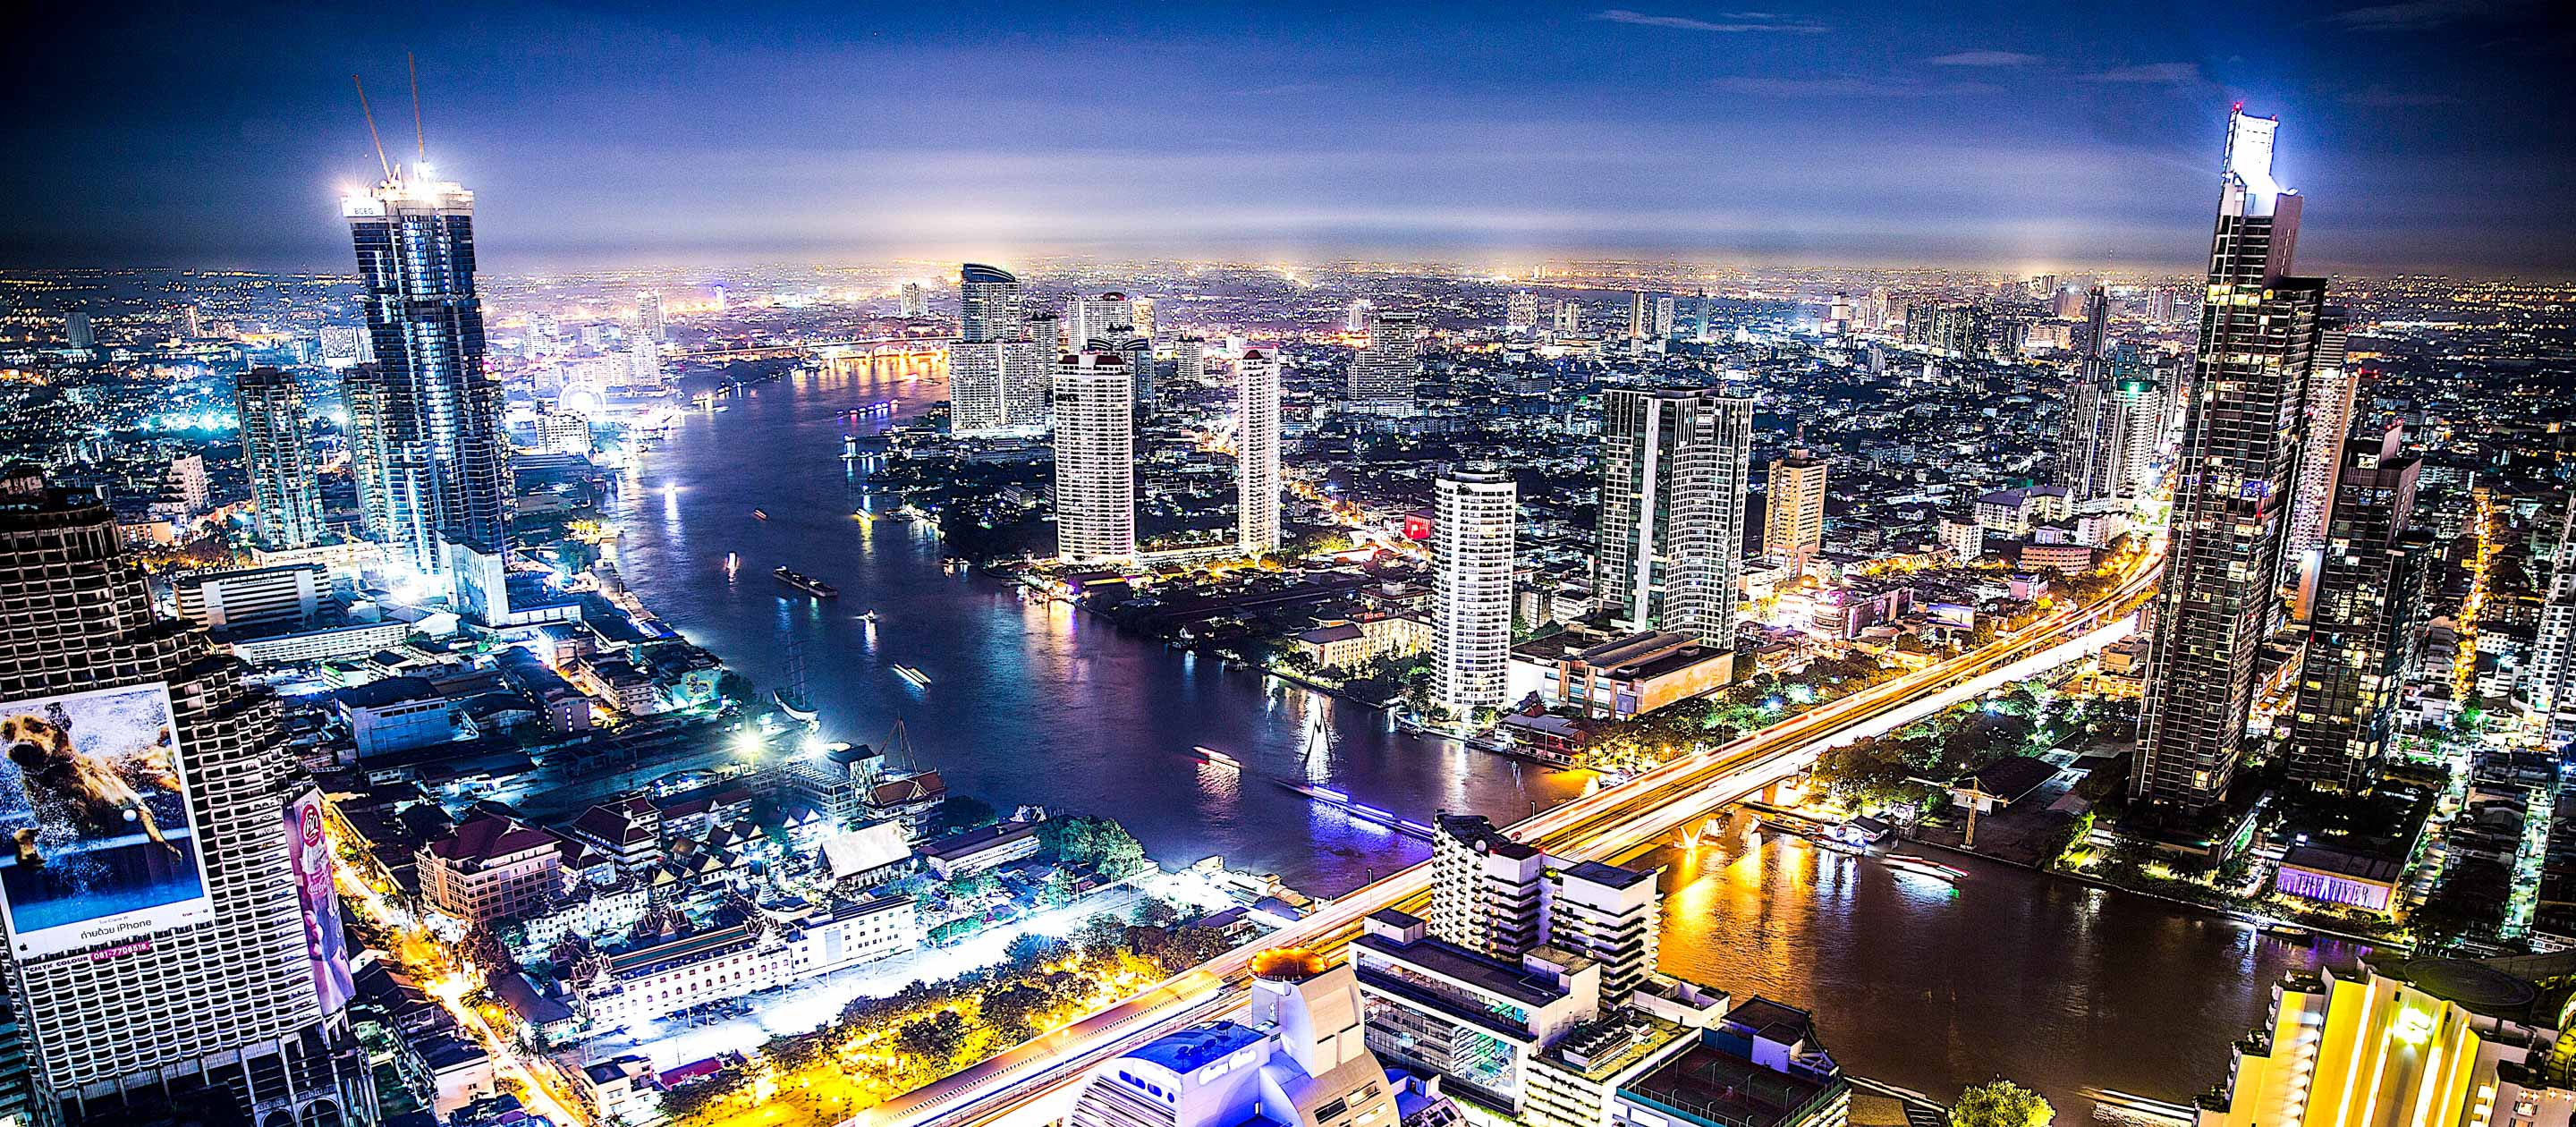 Aerial of Bangkok, Thailand at night